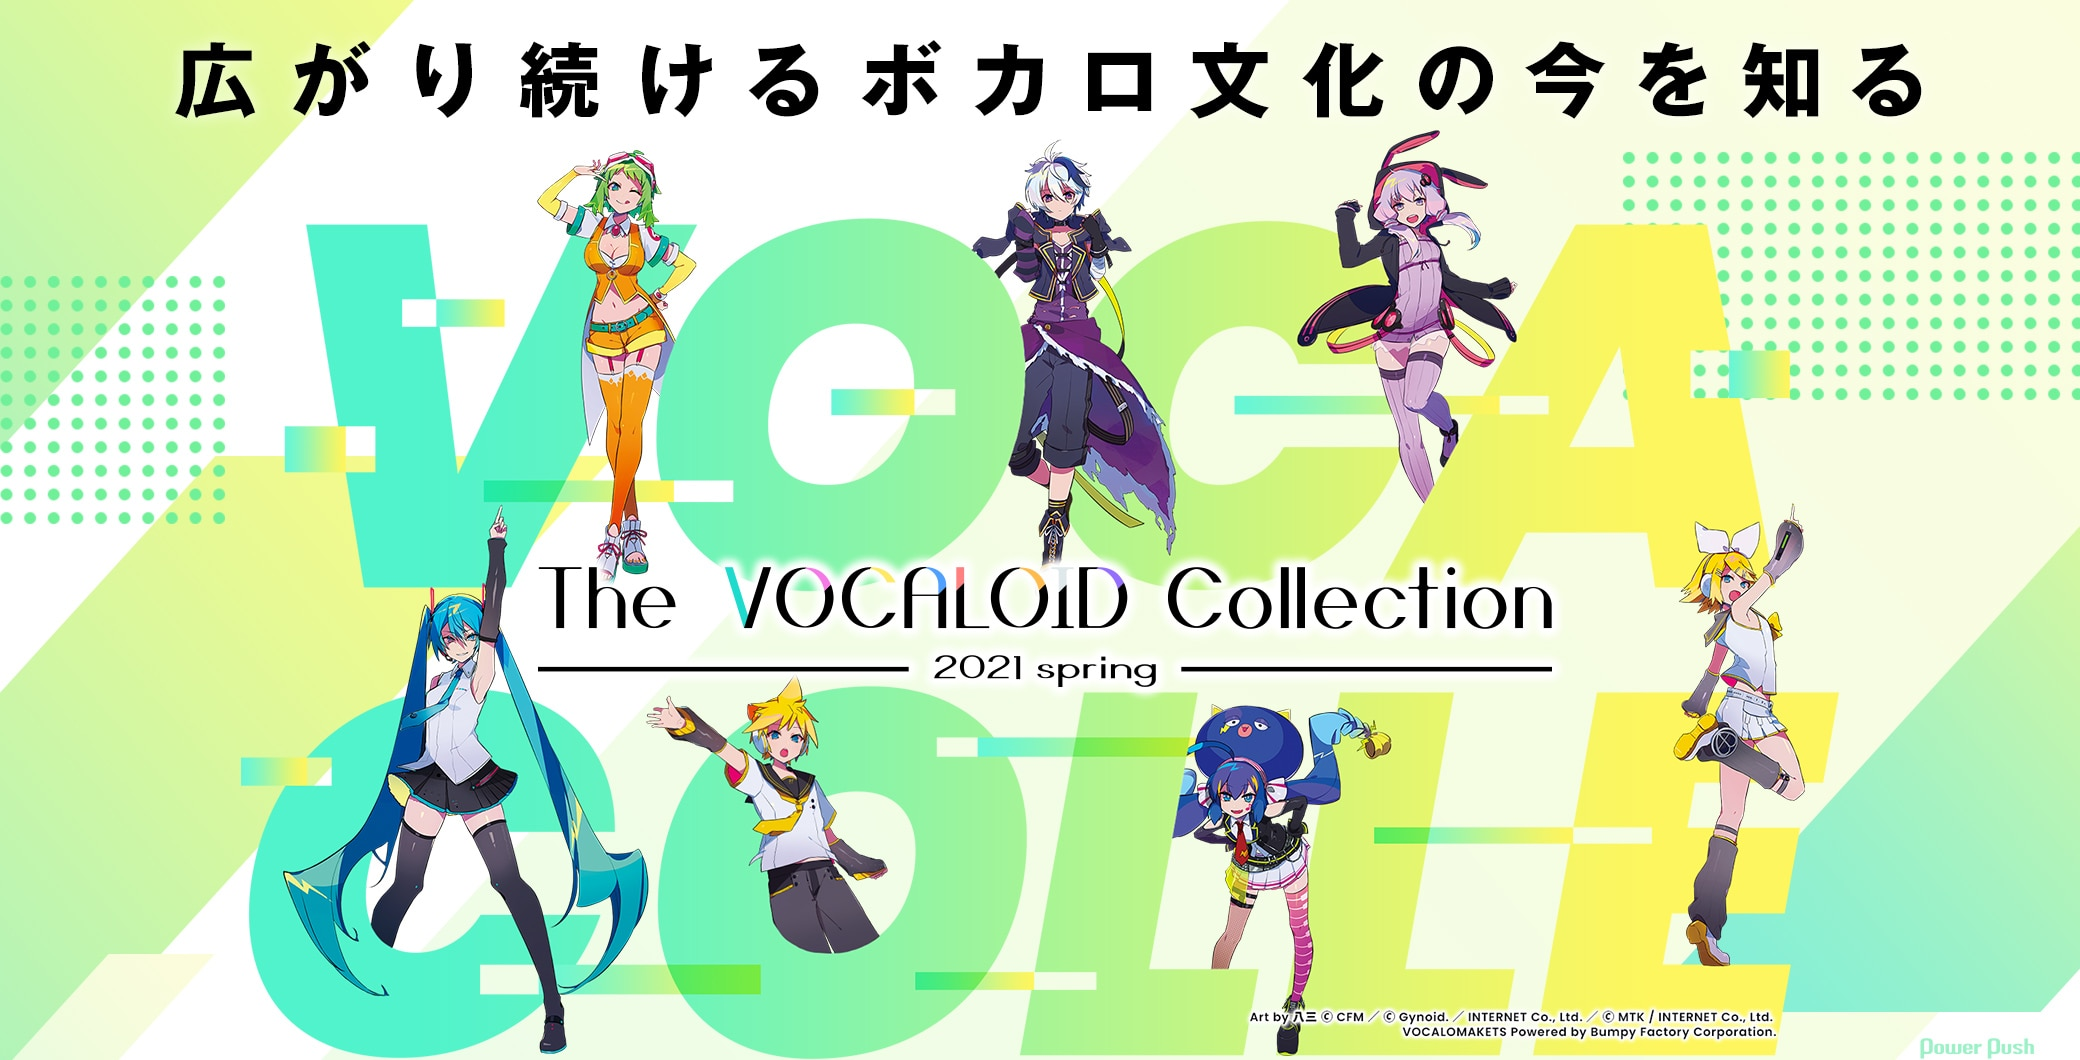 The VOCALOID Collection ~2021 Spring~   広がり続けるボカロ文化の今を知る